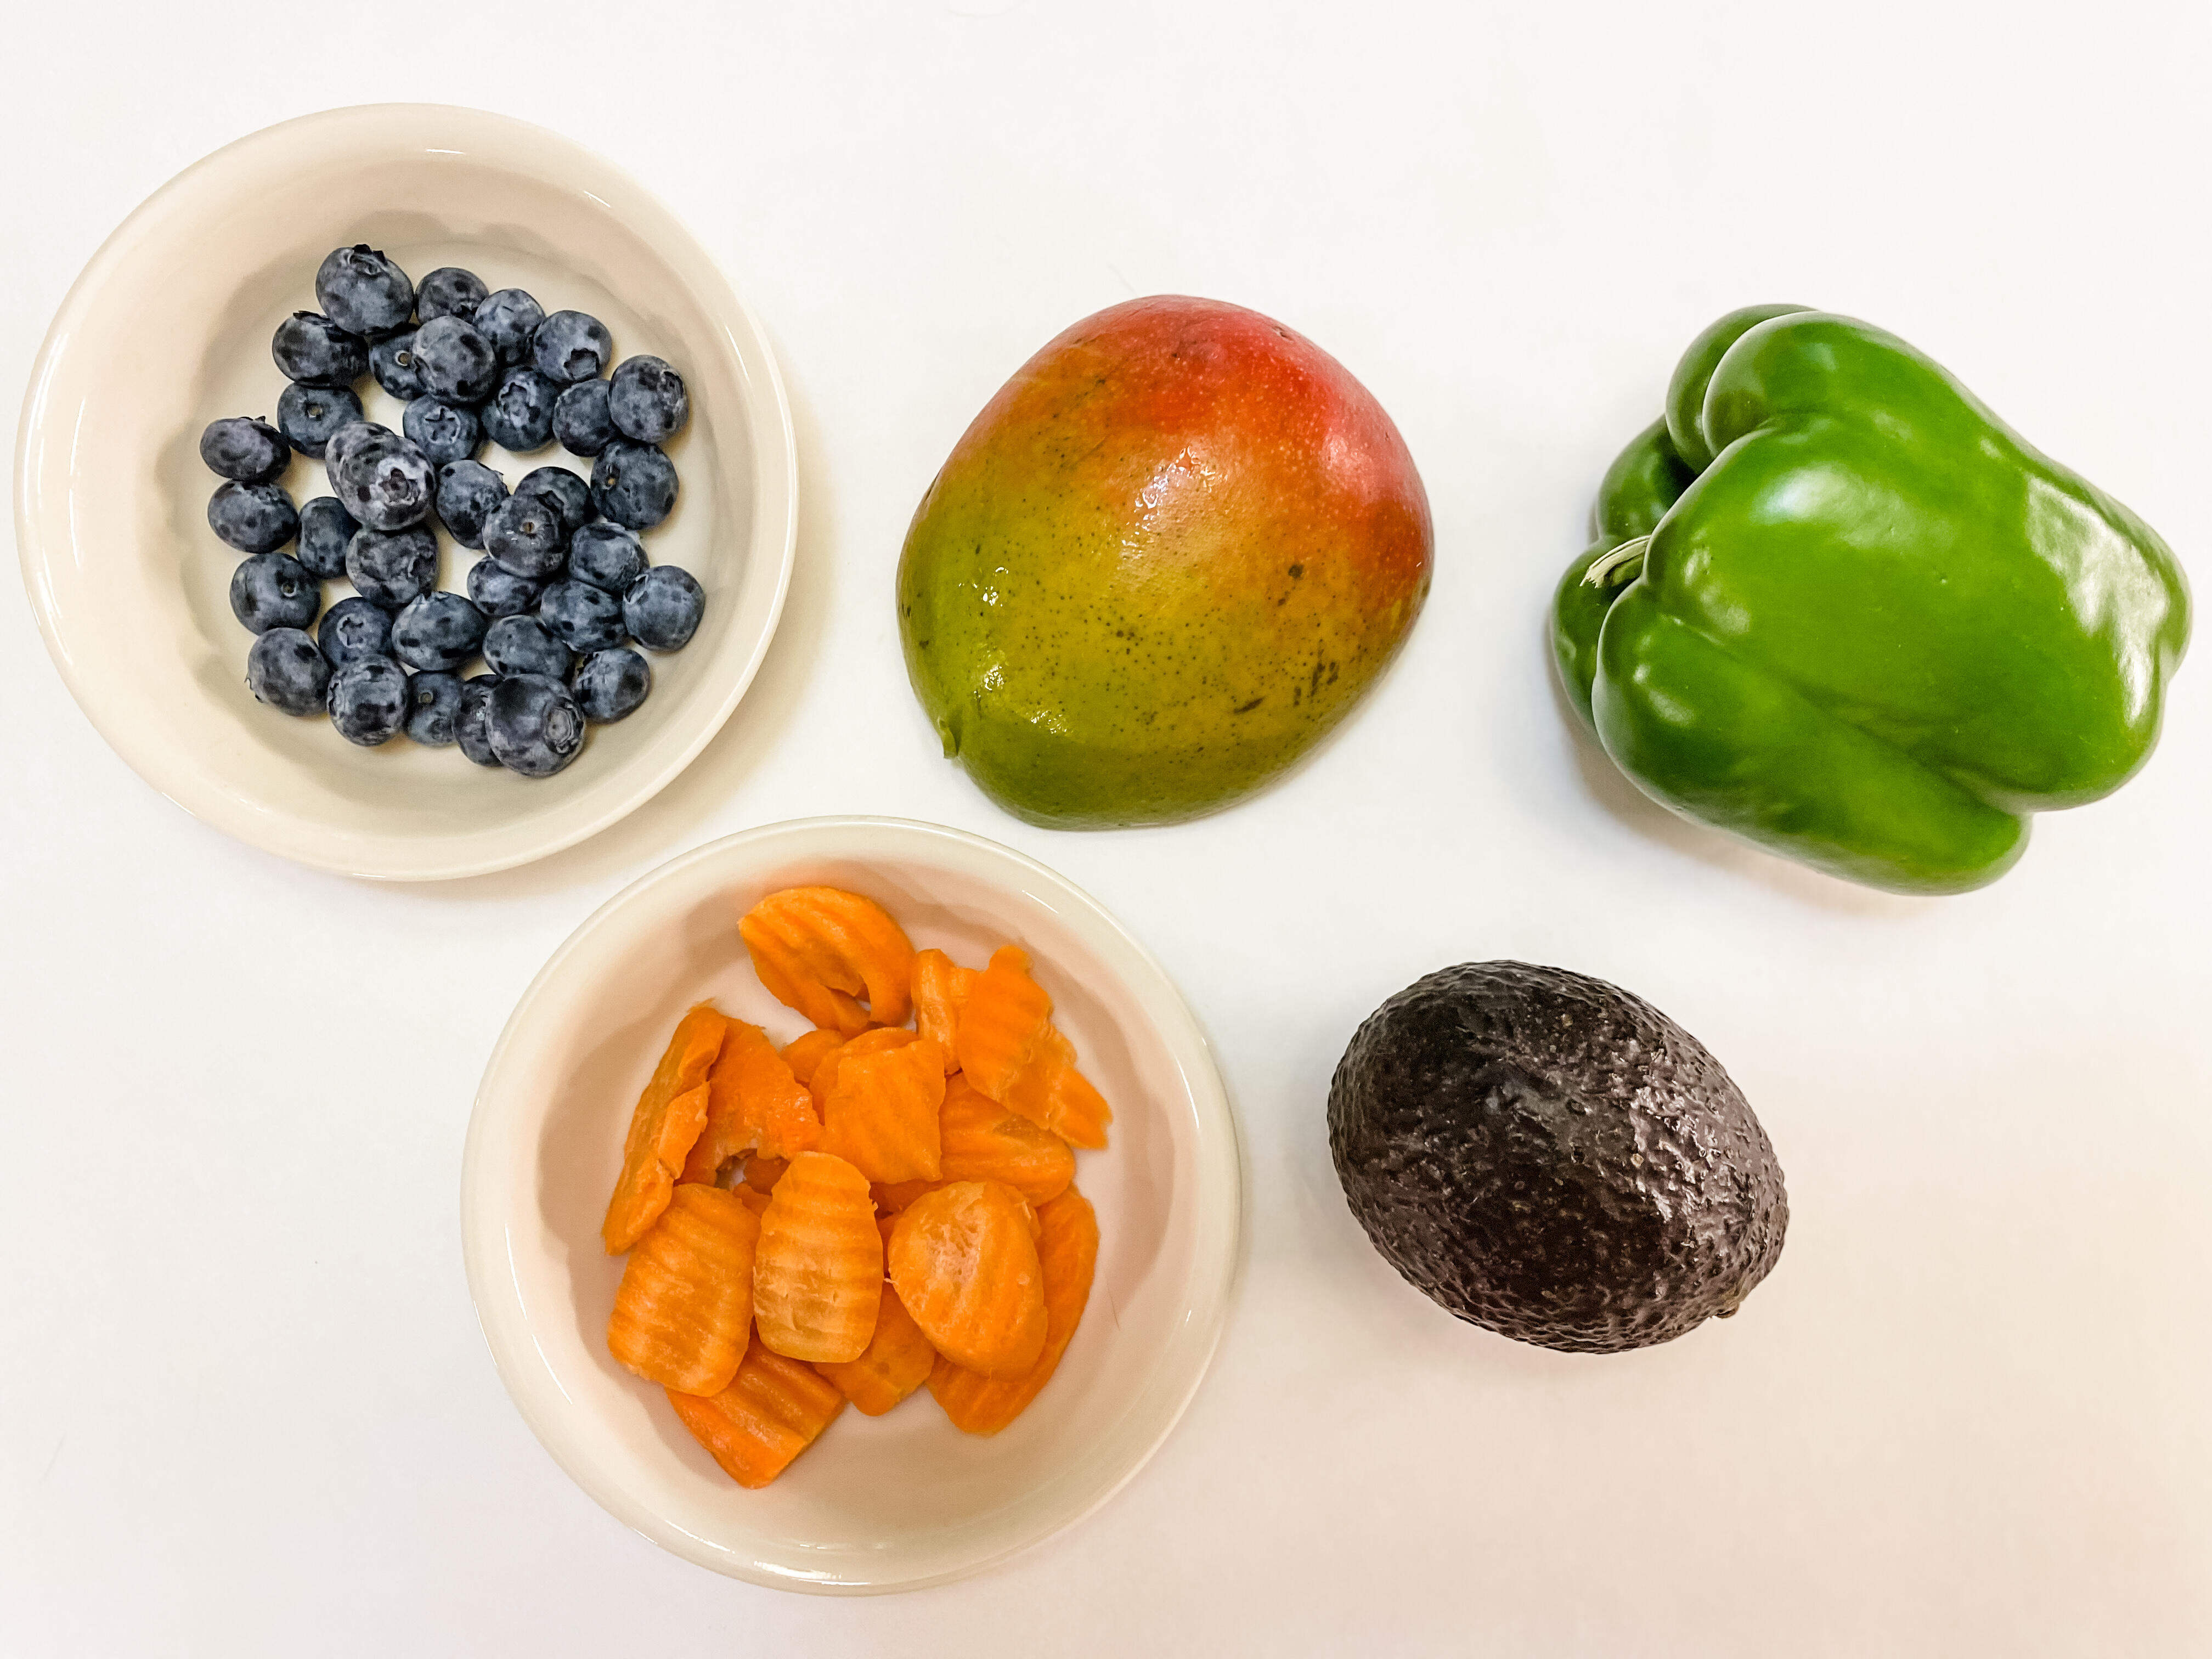 Five servings of produce: half cup of blueberries, half a mango, one bell pepper, one avocado, half cup of carrots